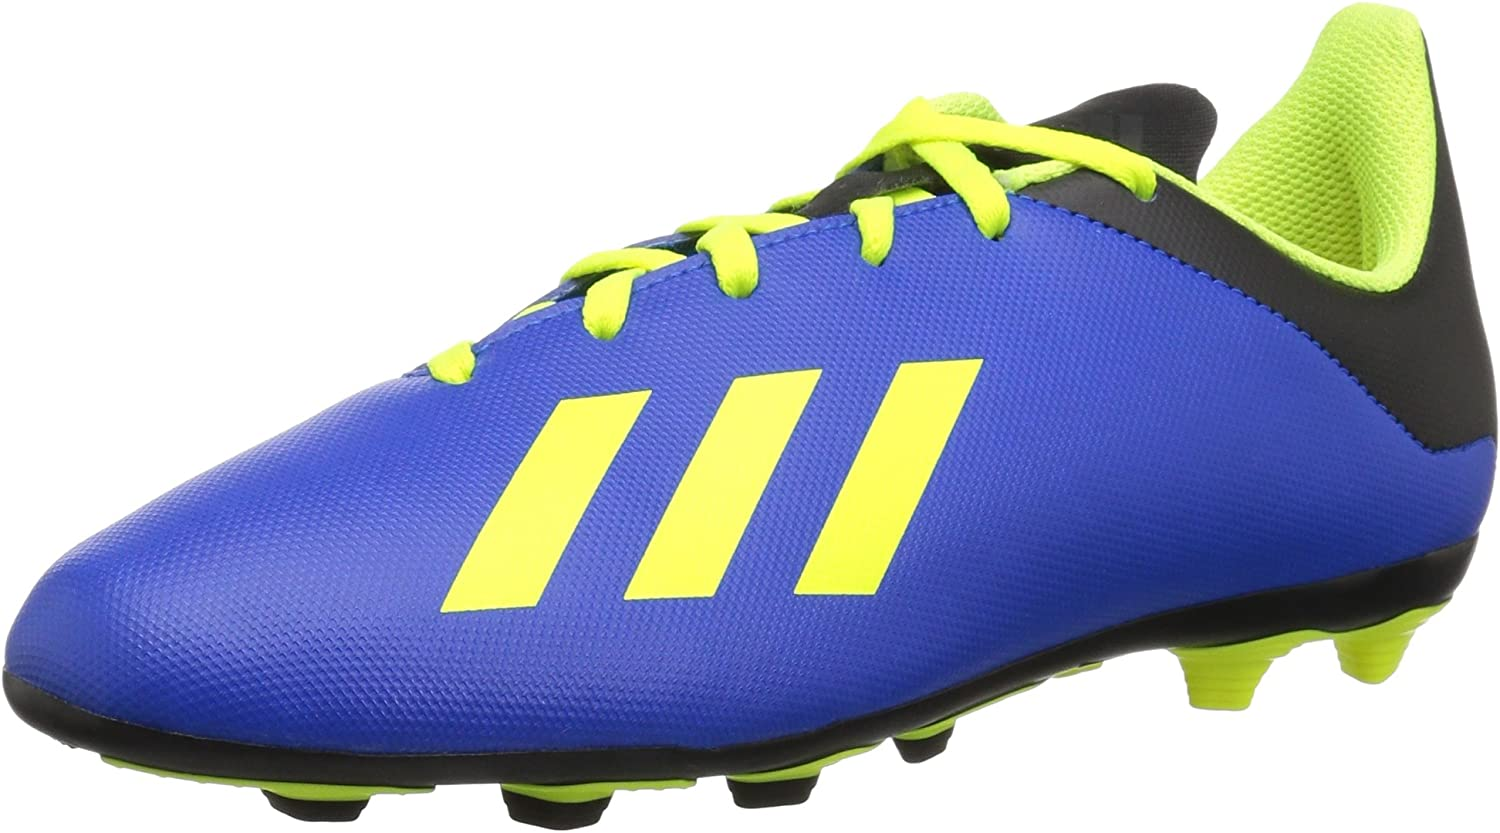 Adidas Unisex X 18.4 Firm Ground Soccer shoes